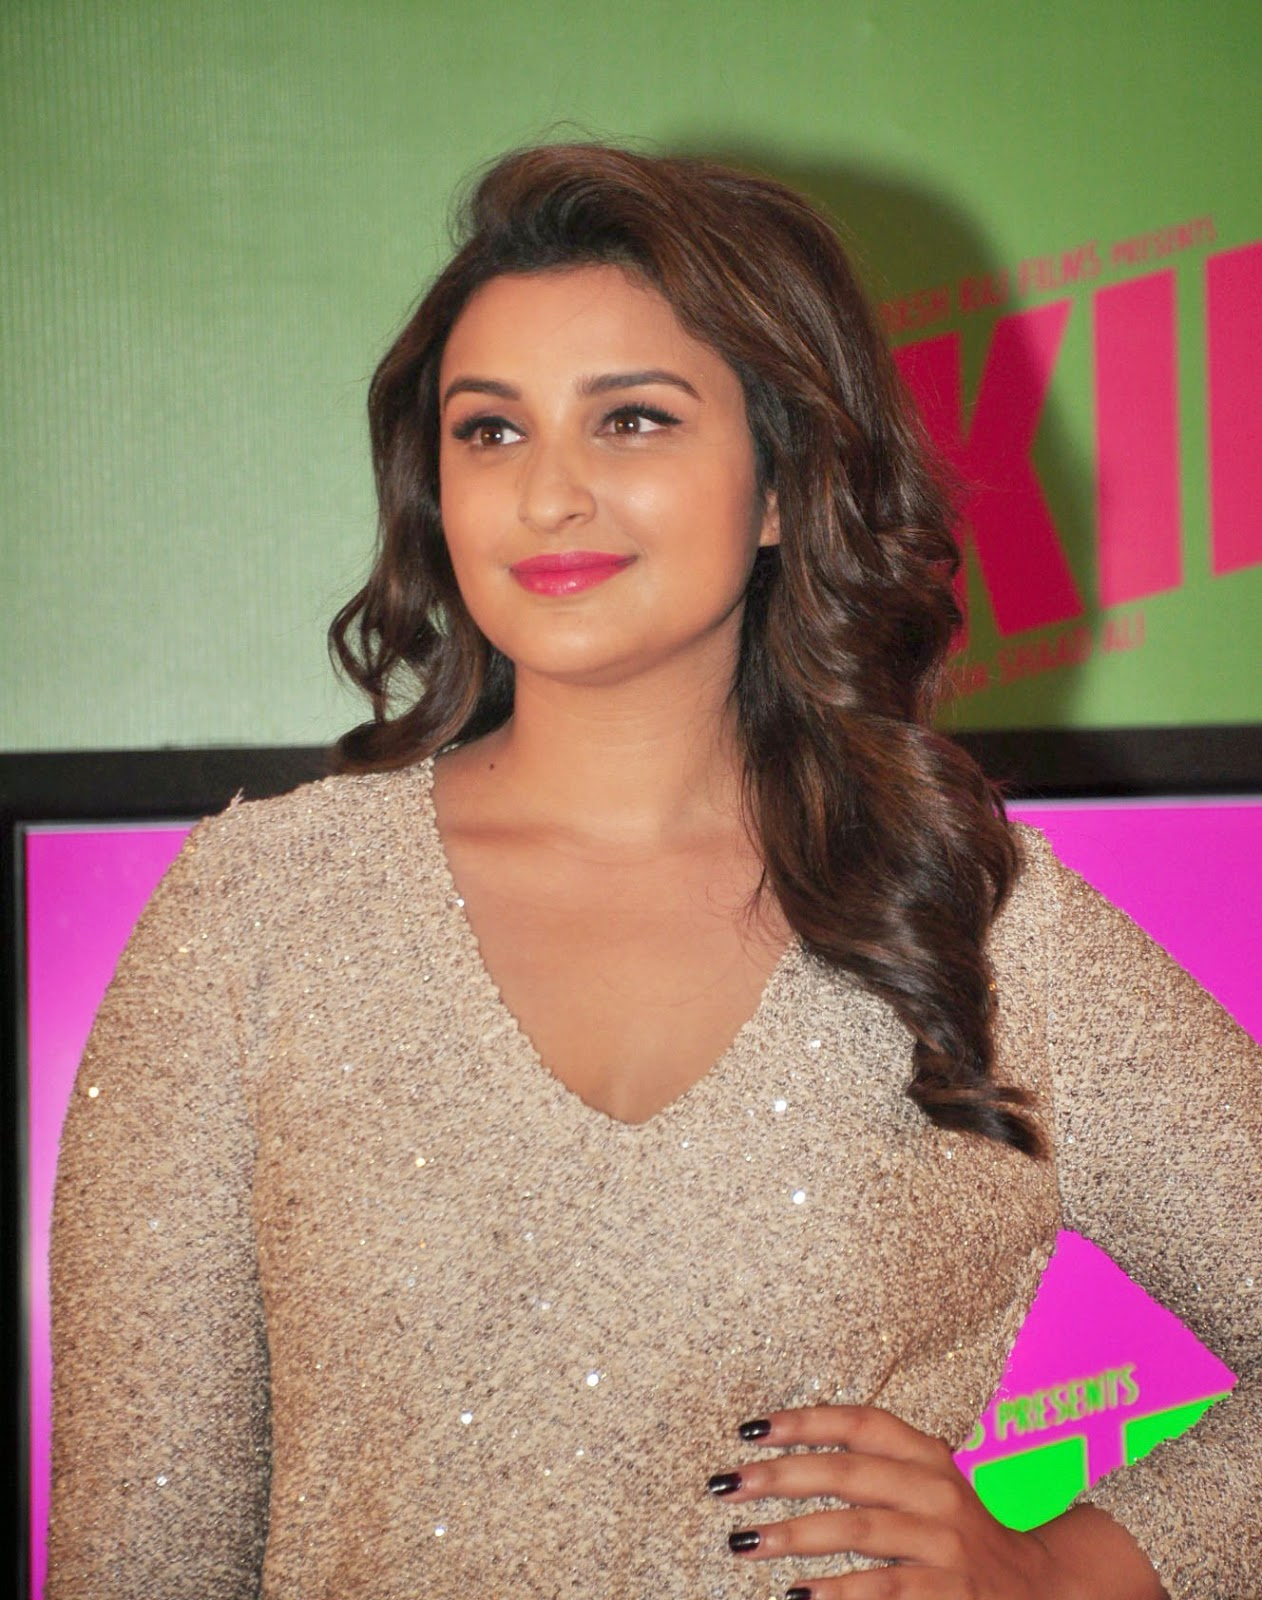 Parineeti Chopra Hot Photos In White Dress